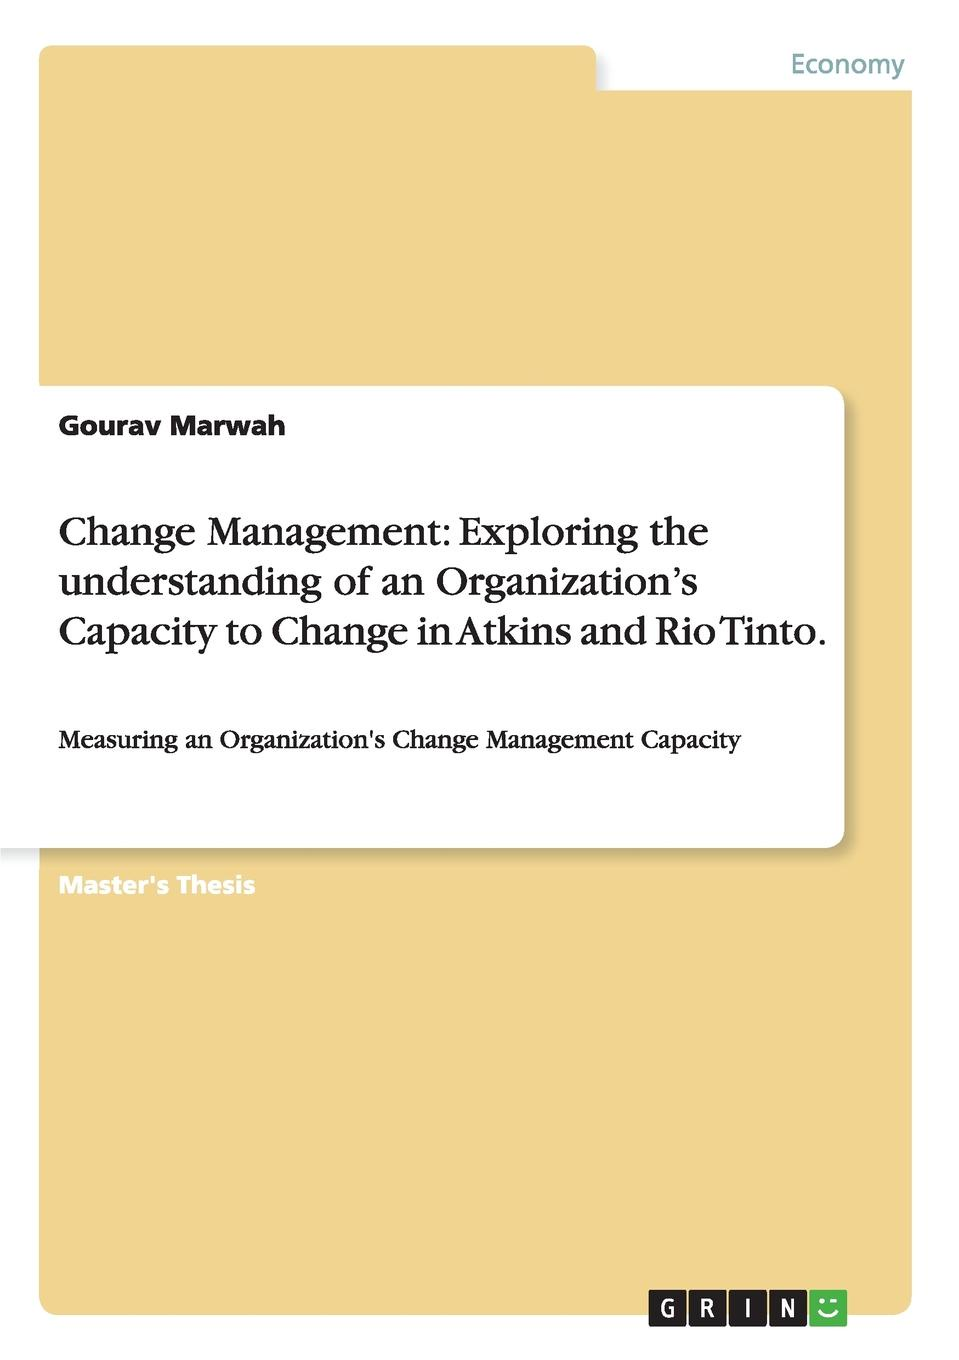 Gourav Marwah Change Management. Exploring the understanding of an Organization.s Capacity to Change in Atkins and Rio Tinto. sherwyn morreale building the high trust organization strategies for supporting five key dimensions of trust